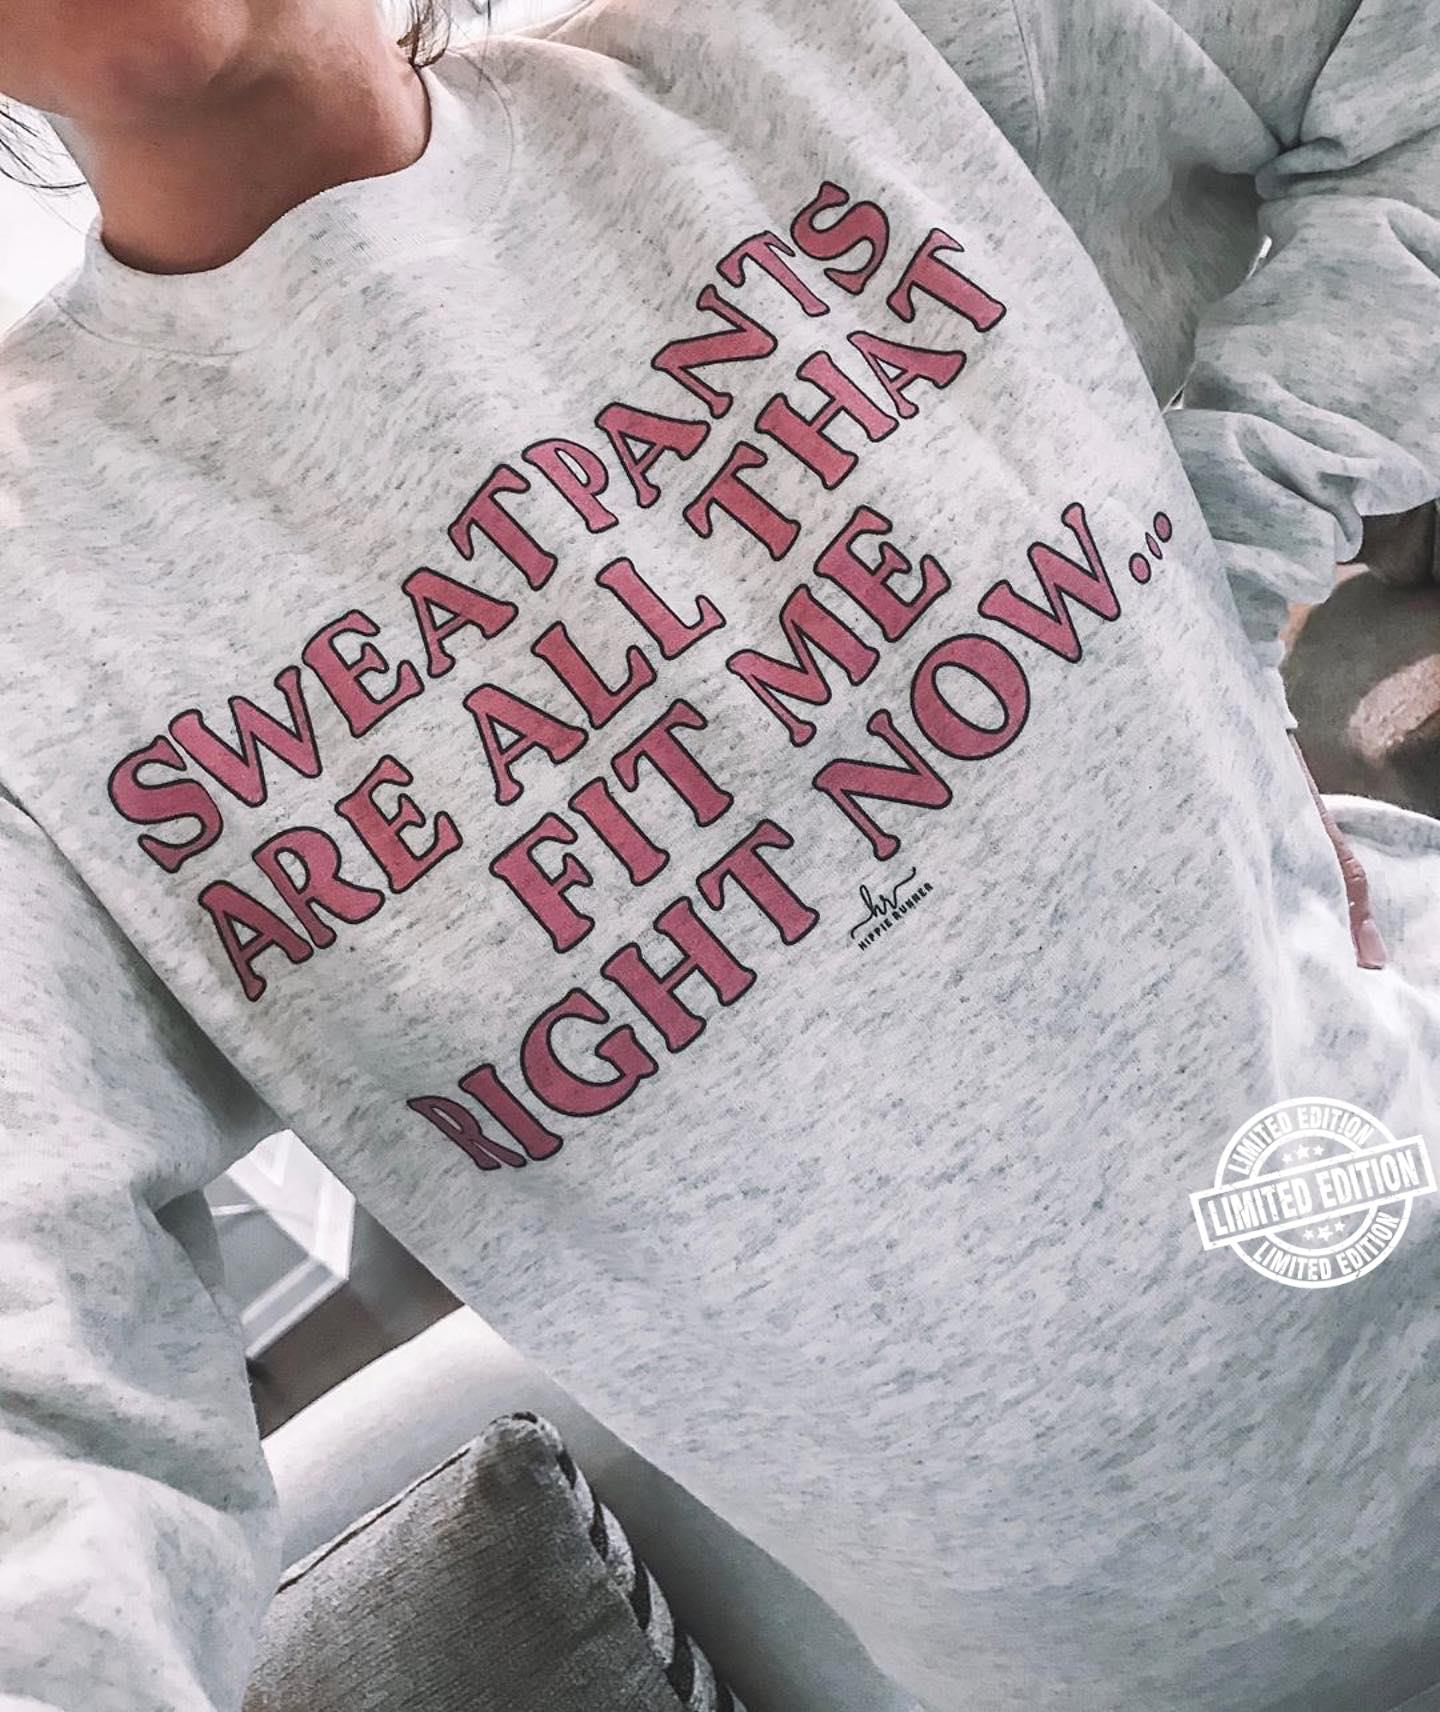 Sweatpants are all that fit me right now shirt